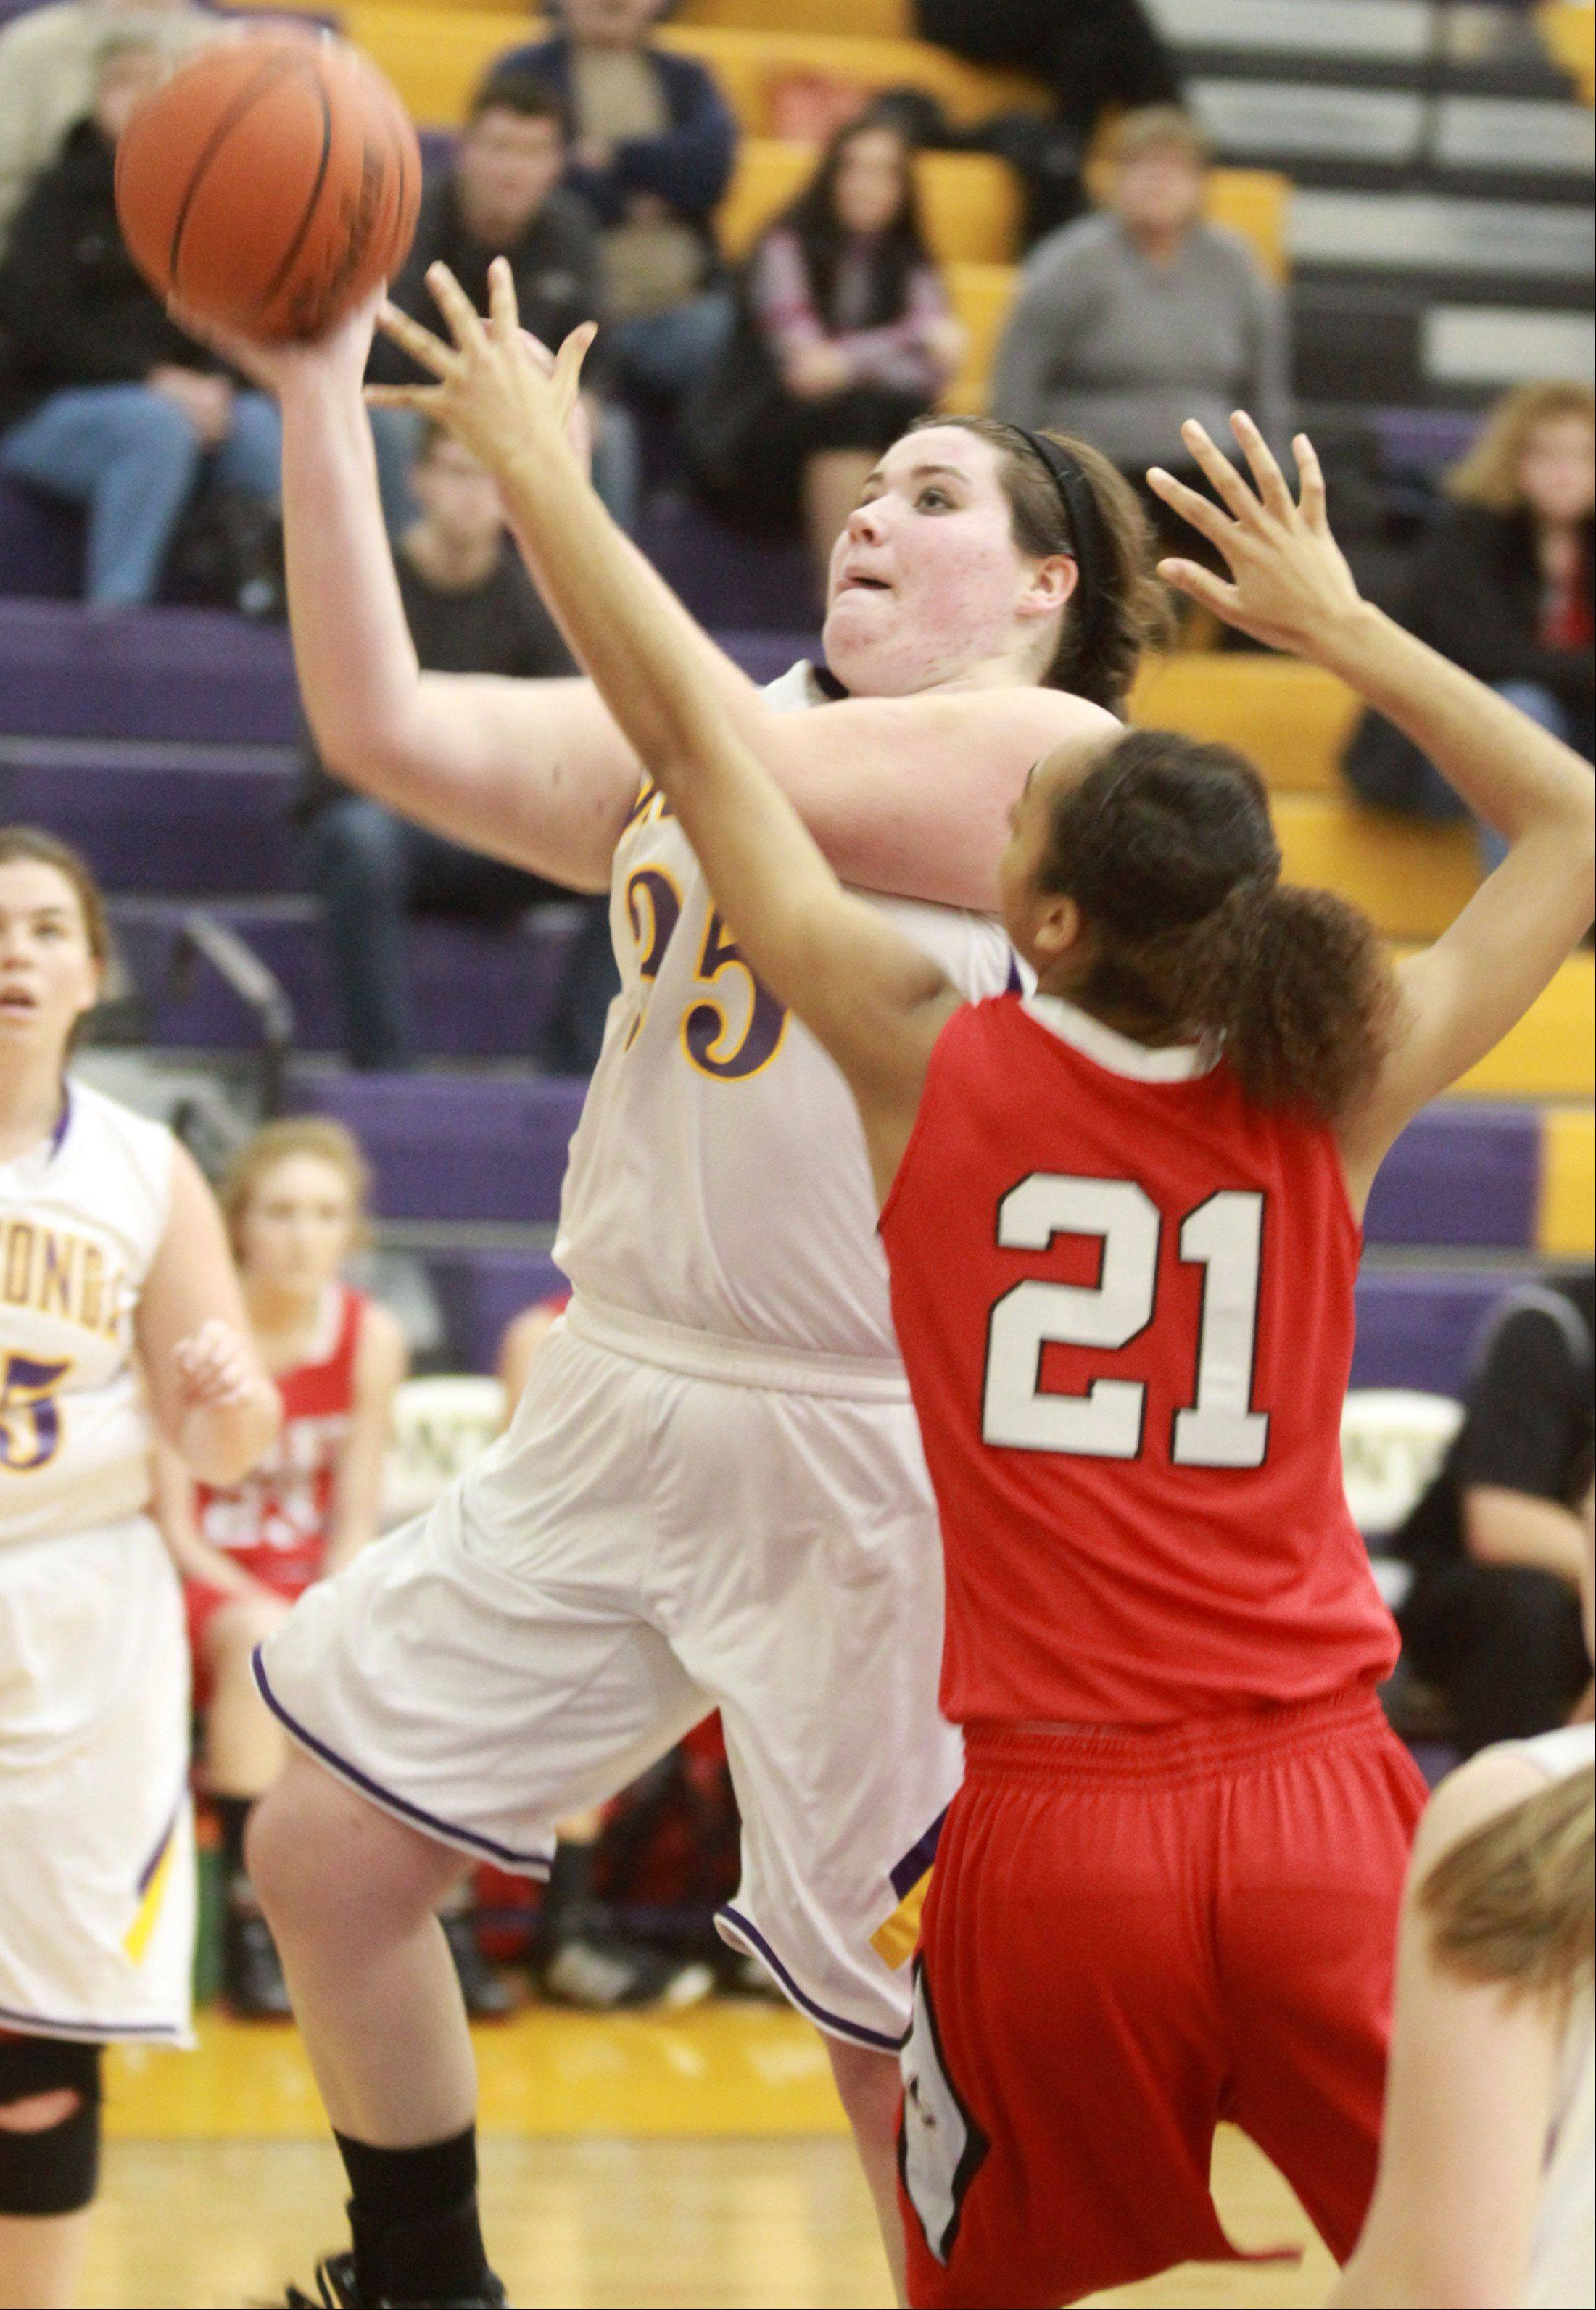 Wauconda's Dani Sturm shoots over Grant defender Julia Sangster at Wauconda on Saturday.